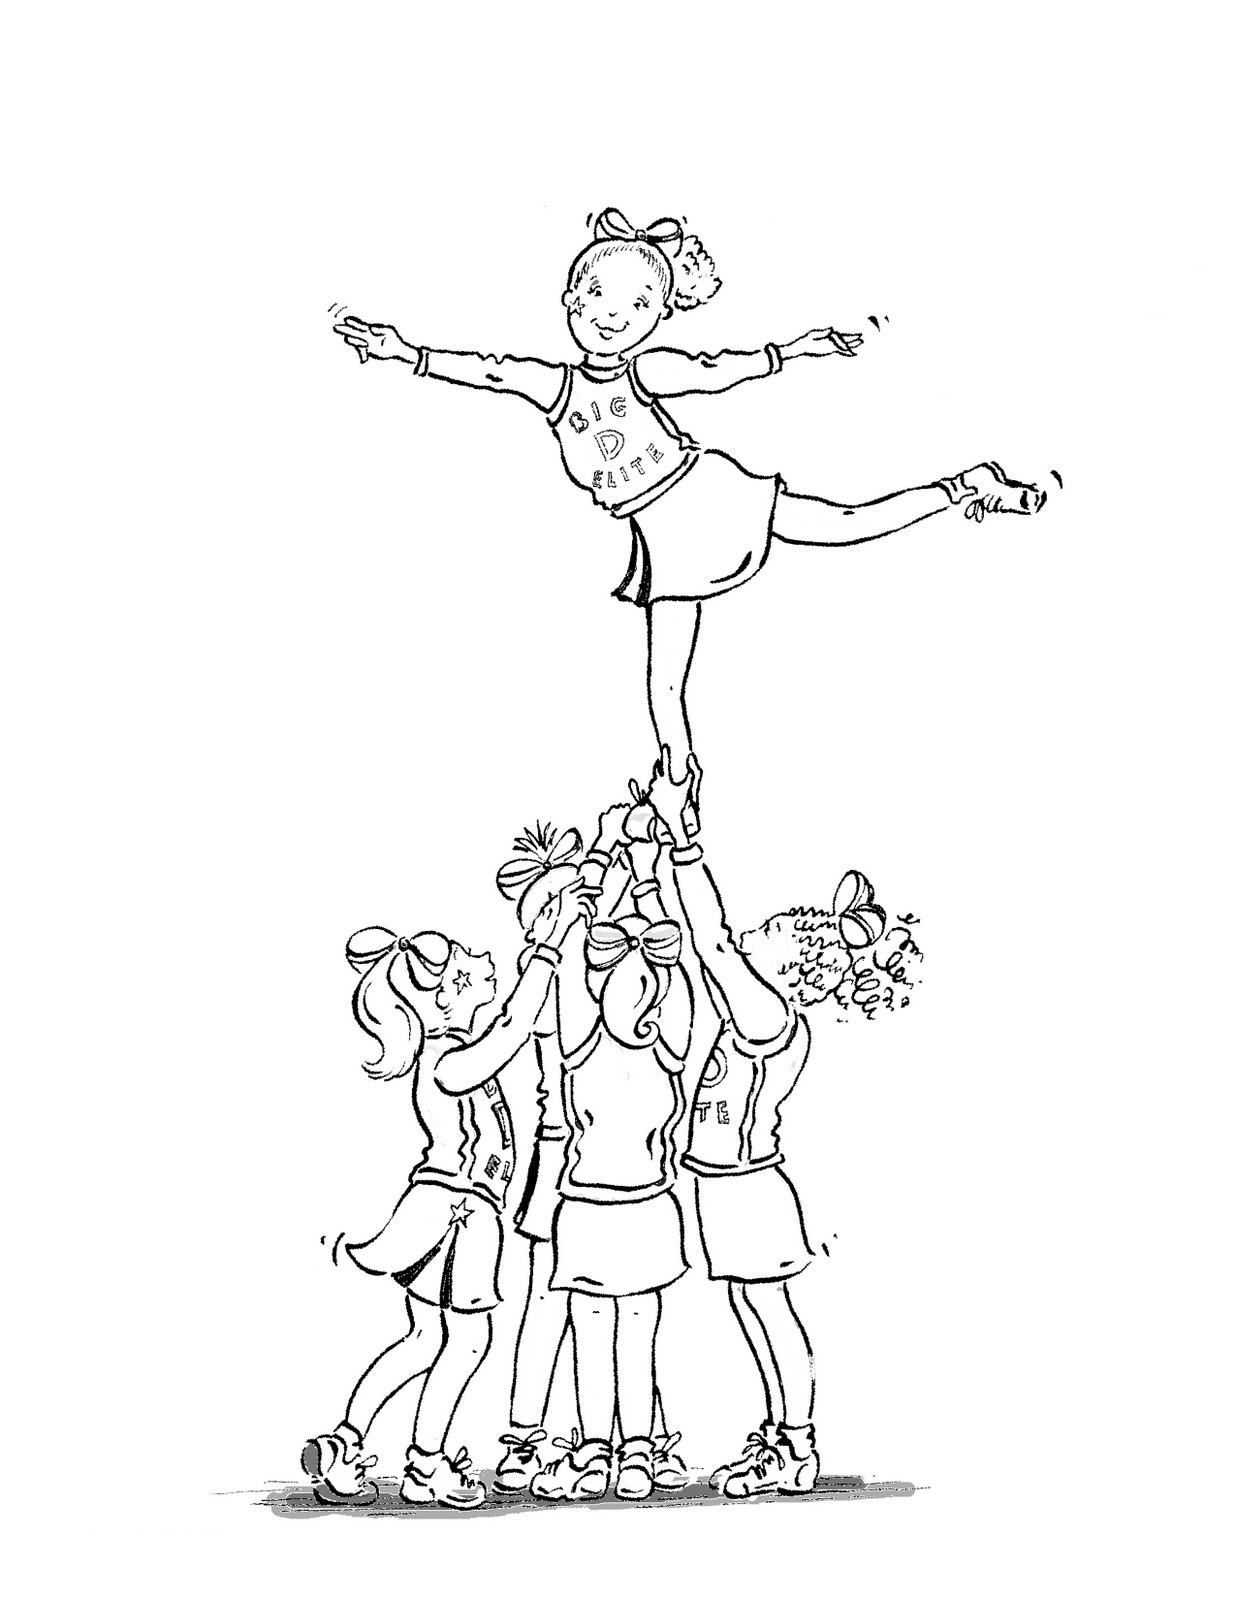 cheerleaded coloring pages | Free Printable Cheerleading Coloring Pages For Kids